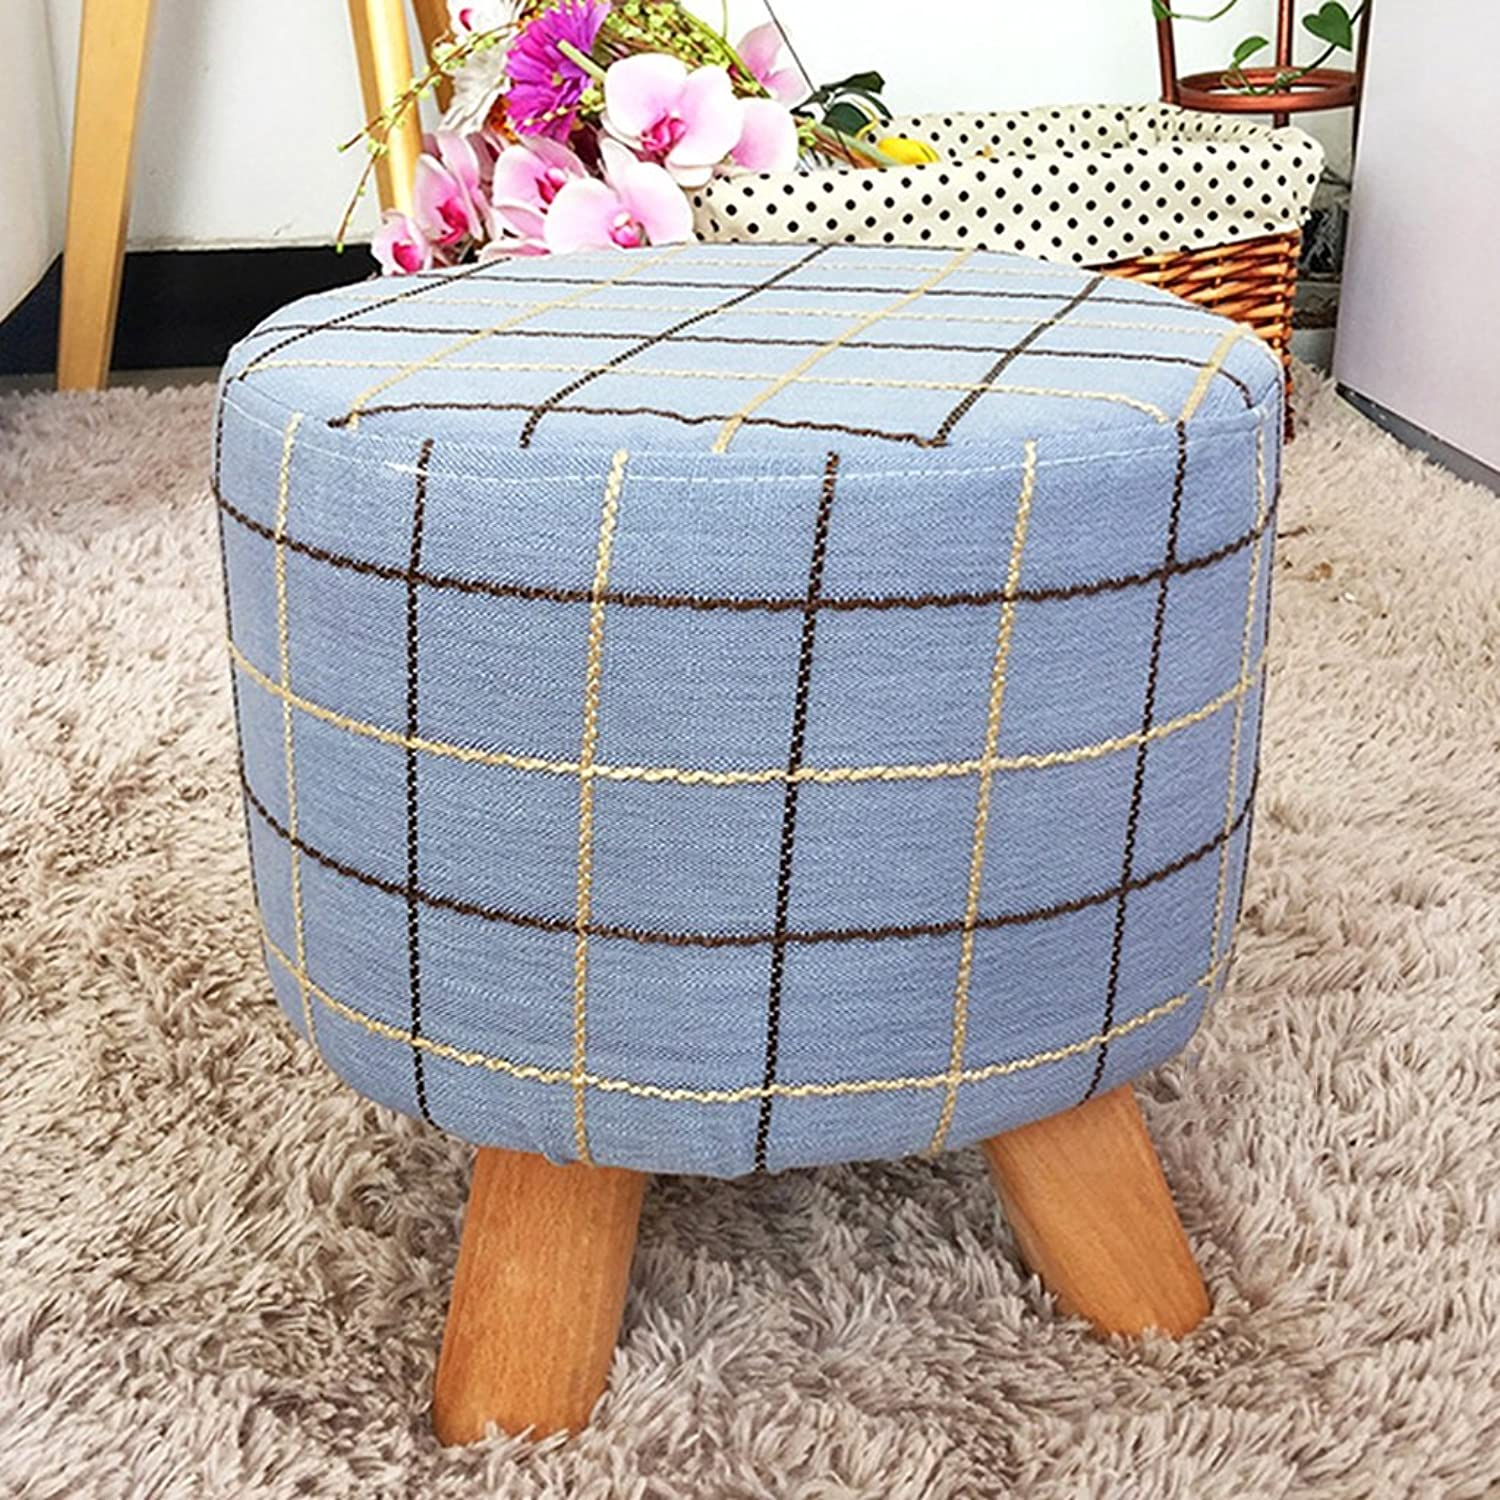 Wooden Bench Round upholstered Footstool Living Room Fabric Stool Sofa Small Round Stool Home Entrance shoes Bench Fashion Small Bench Coffee Table Stool